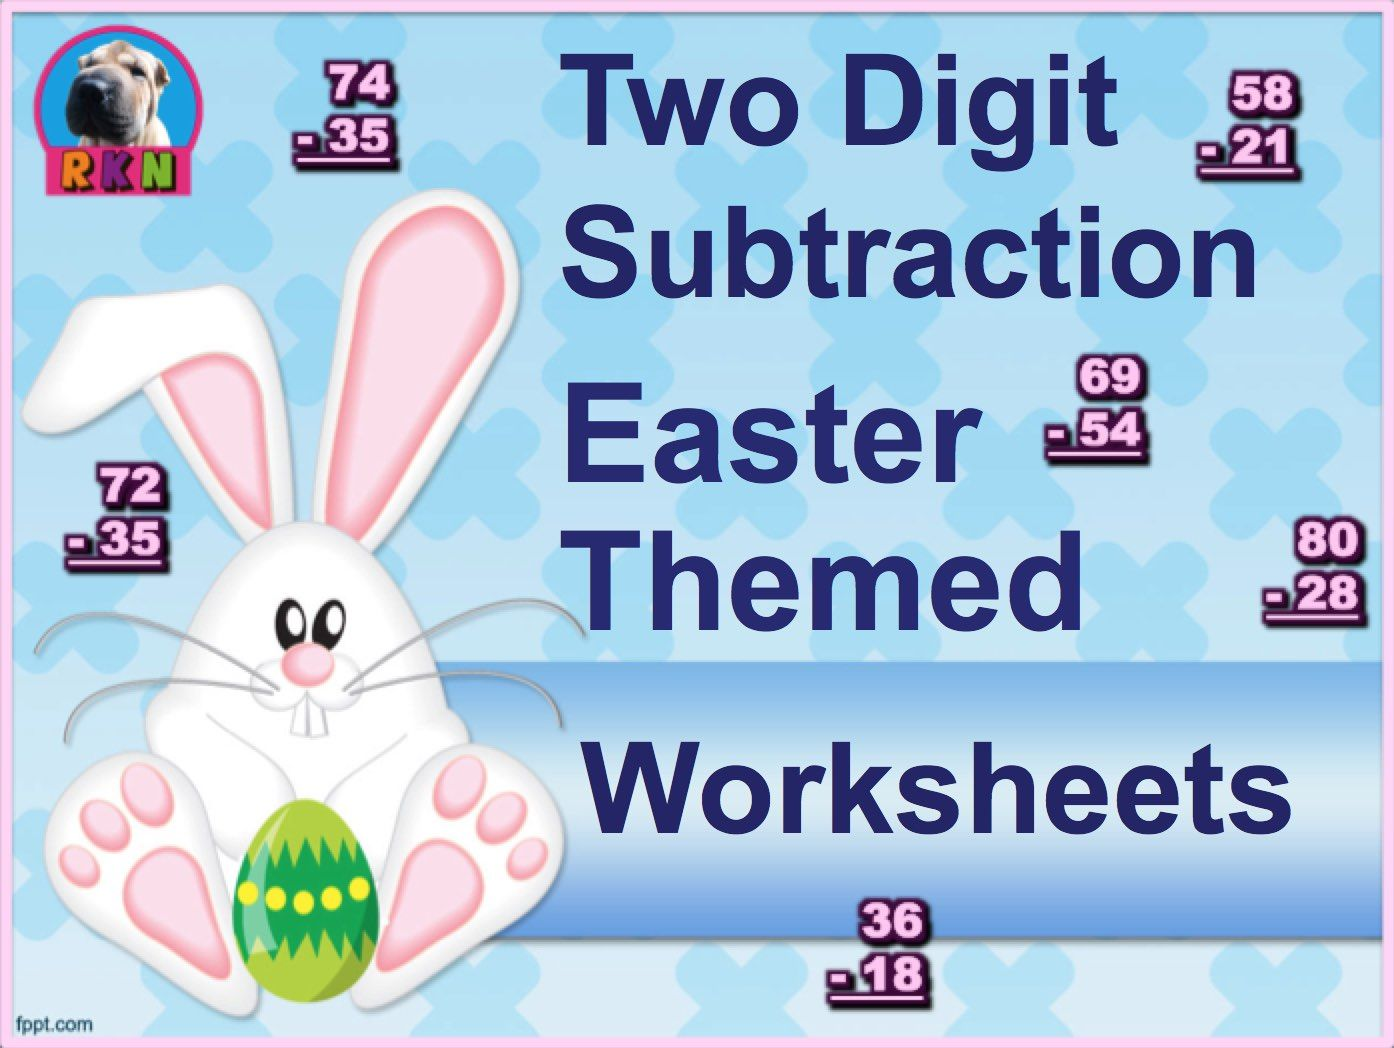 Two Digit Subtraction Worksheets - Easter Themed - Vertical   Power ...